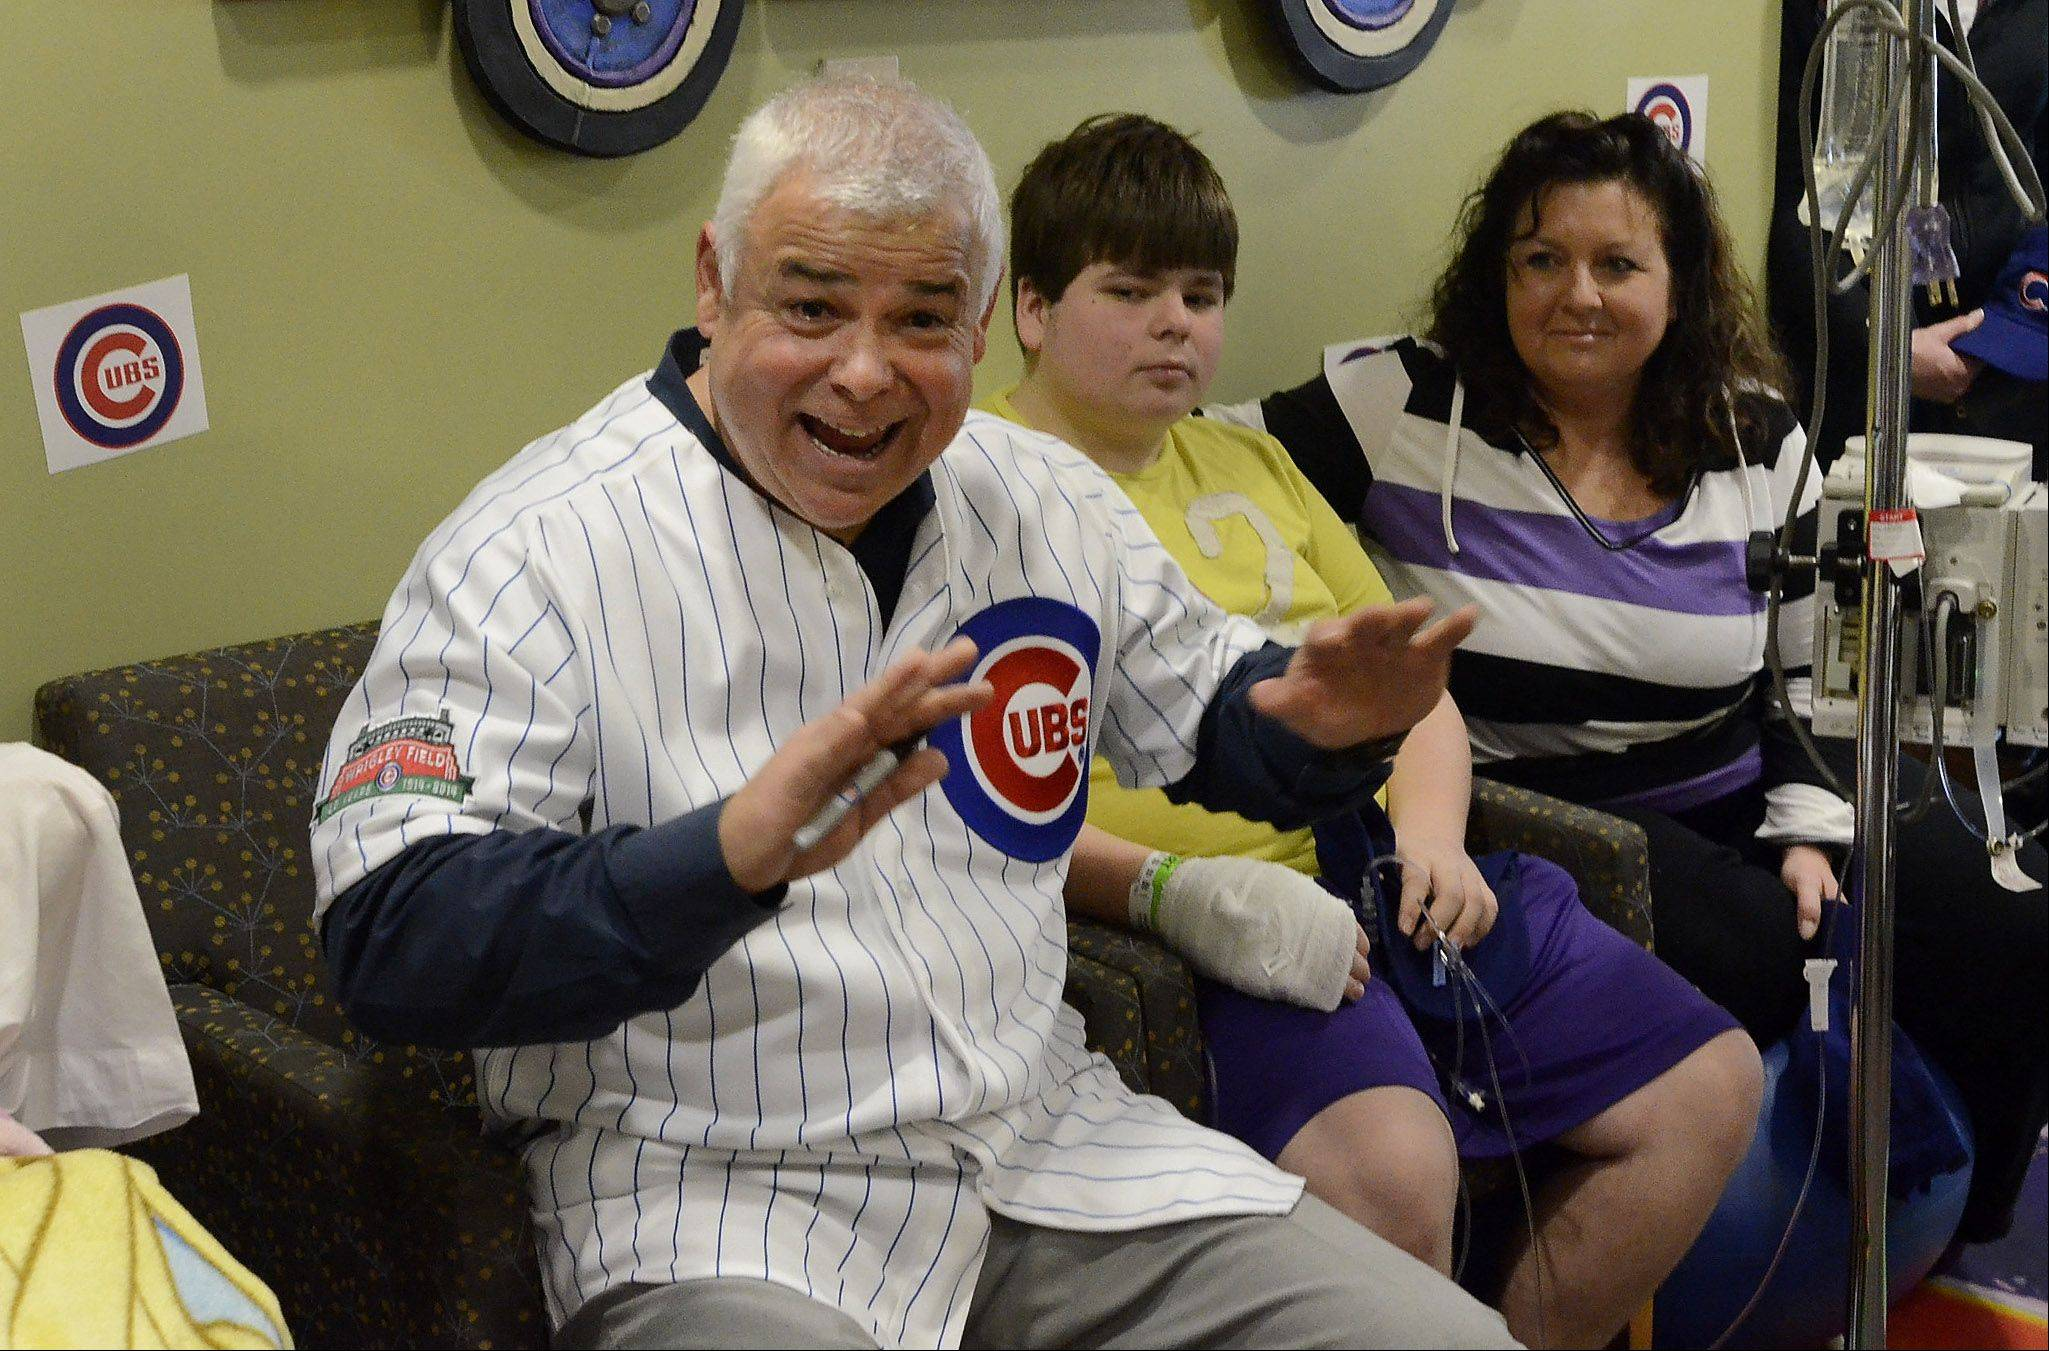 New Cubs manager Rick Renteria visited with children at Advocate Children's Hospital in Park Ridge Friday.